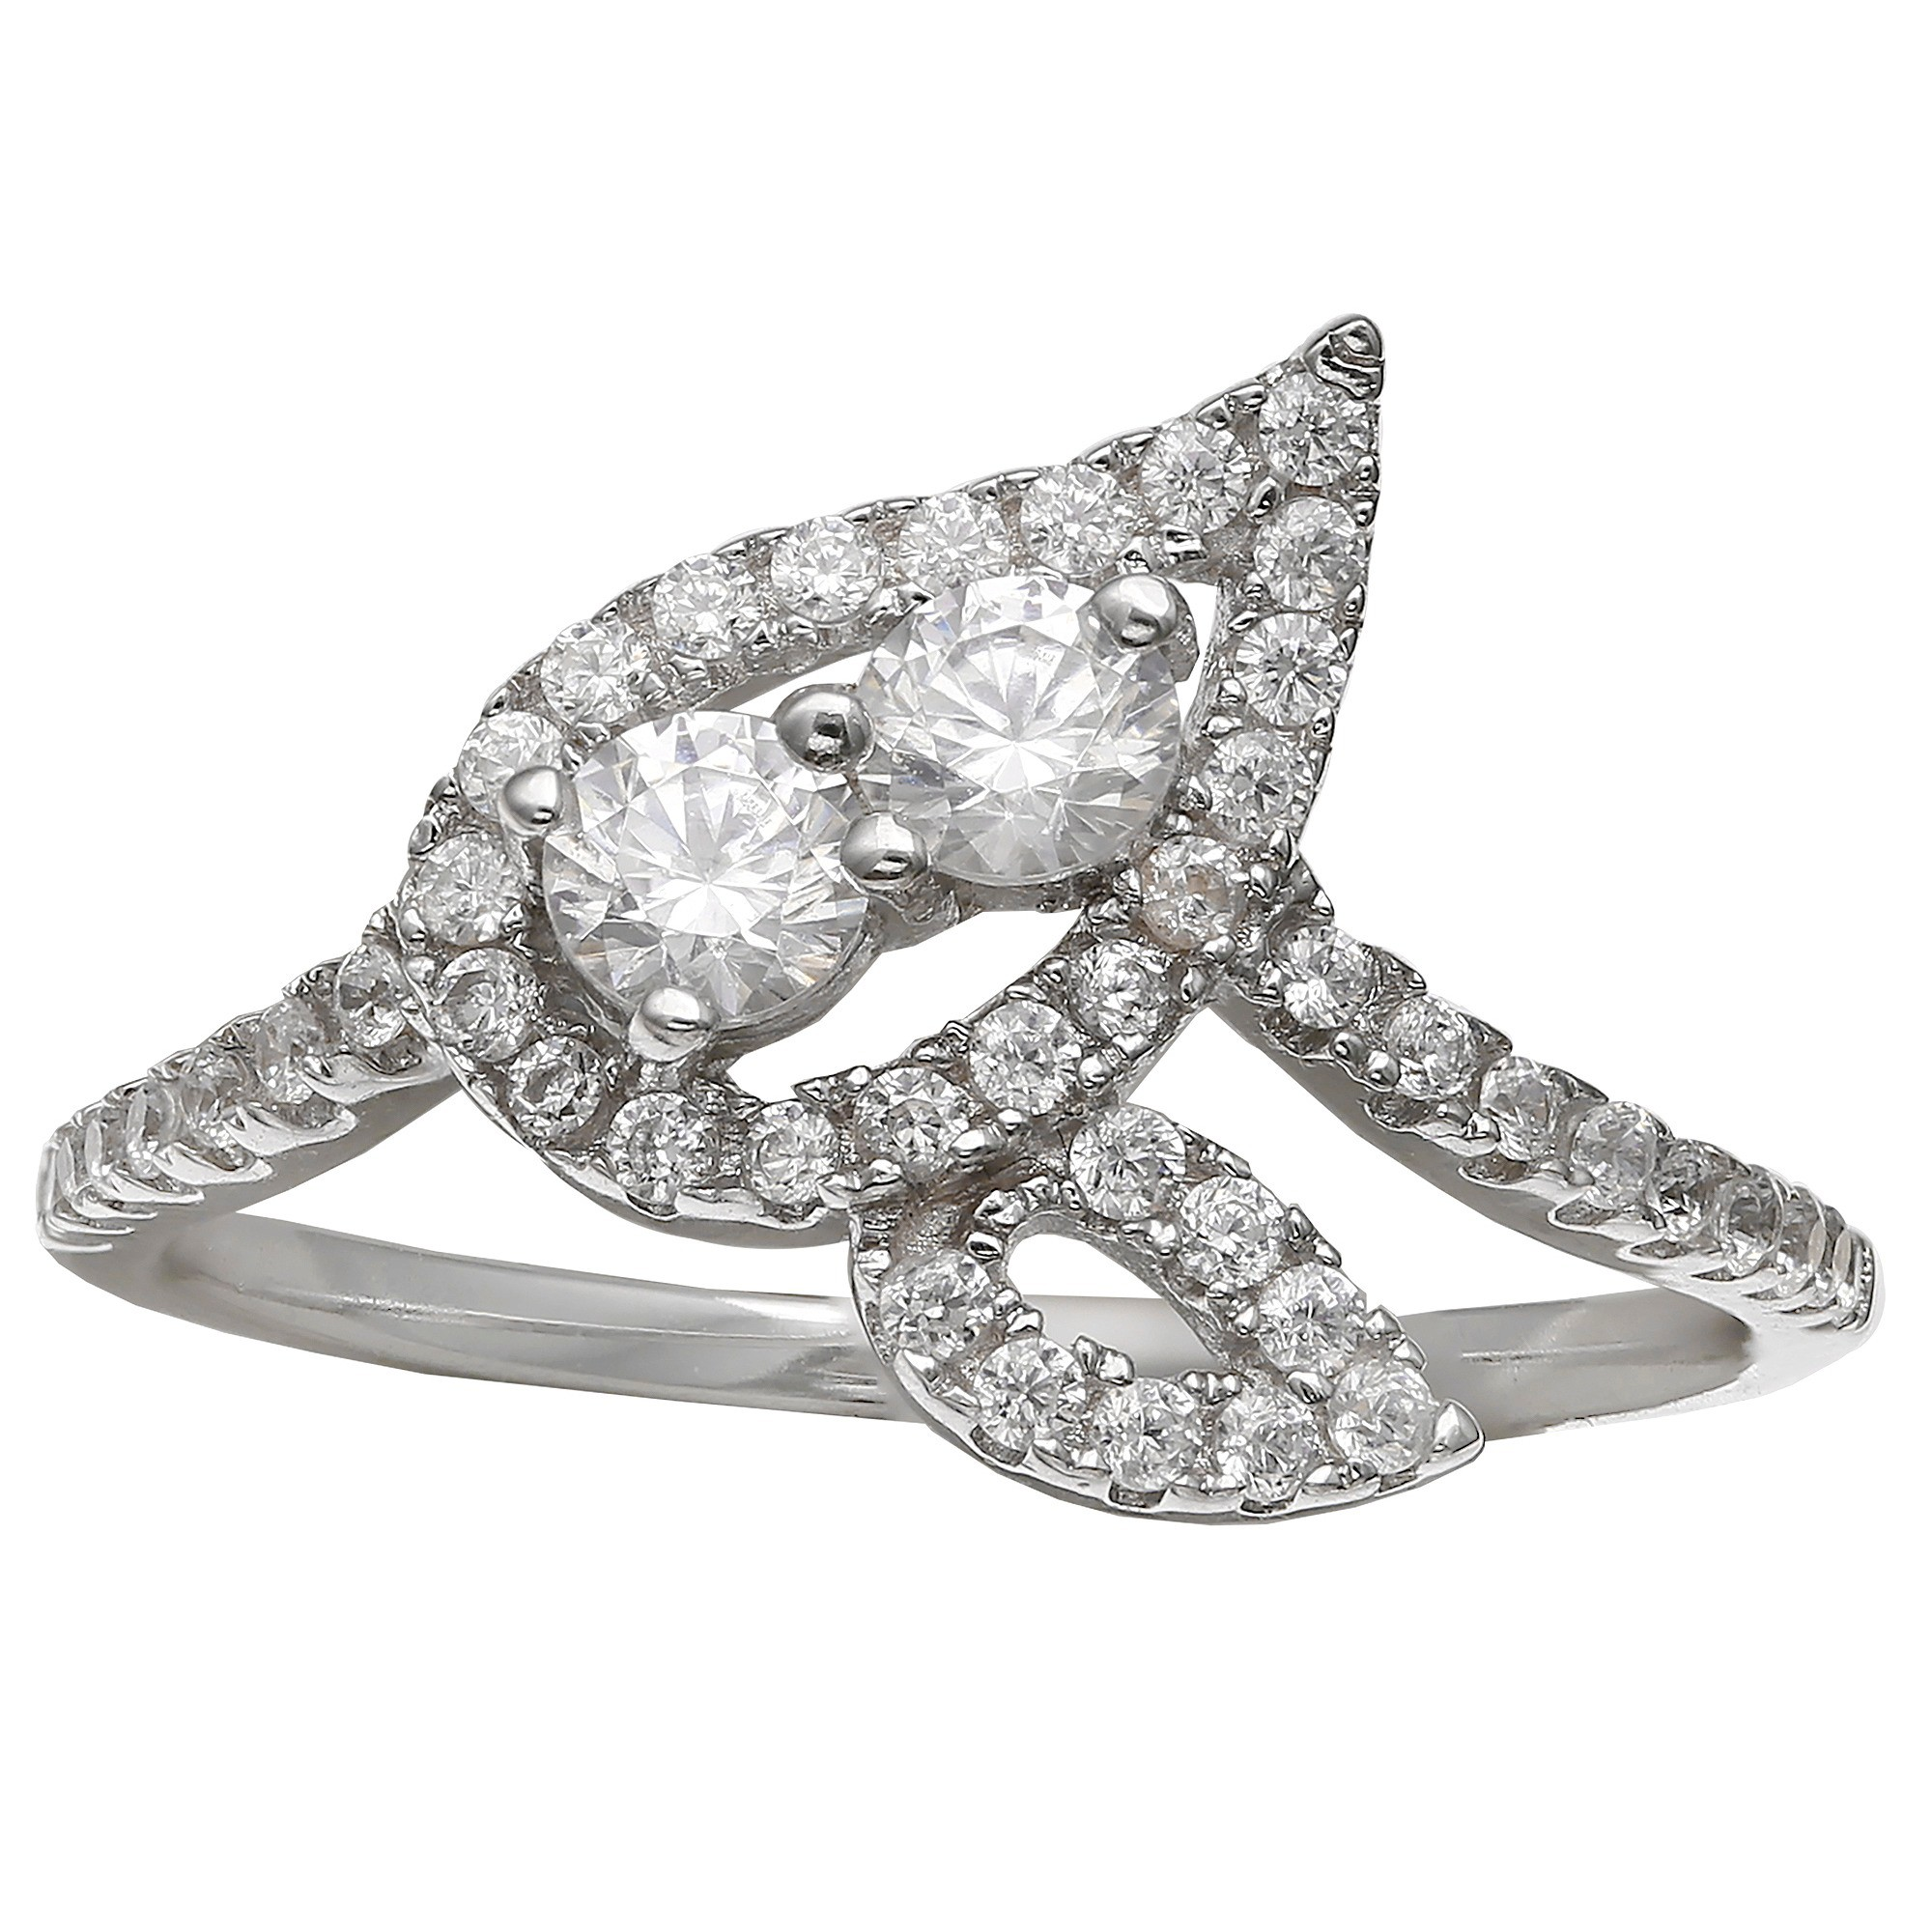 Women's Clear Swarovski Zirconia Pave Leaf Ring - Clear/Gray (Size 8), Clear Silver